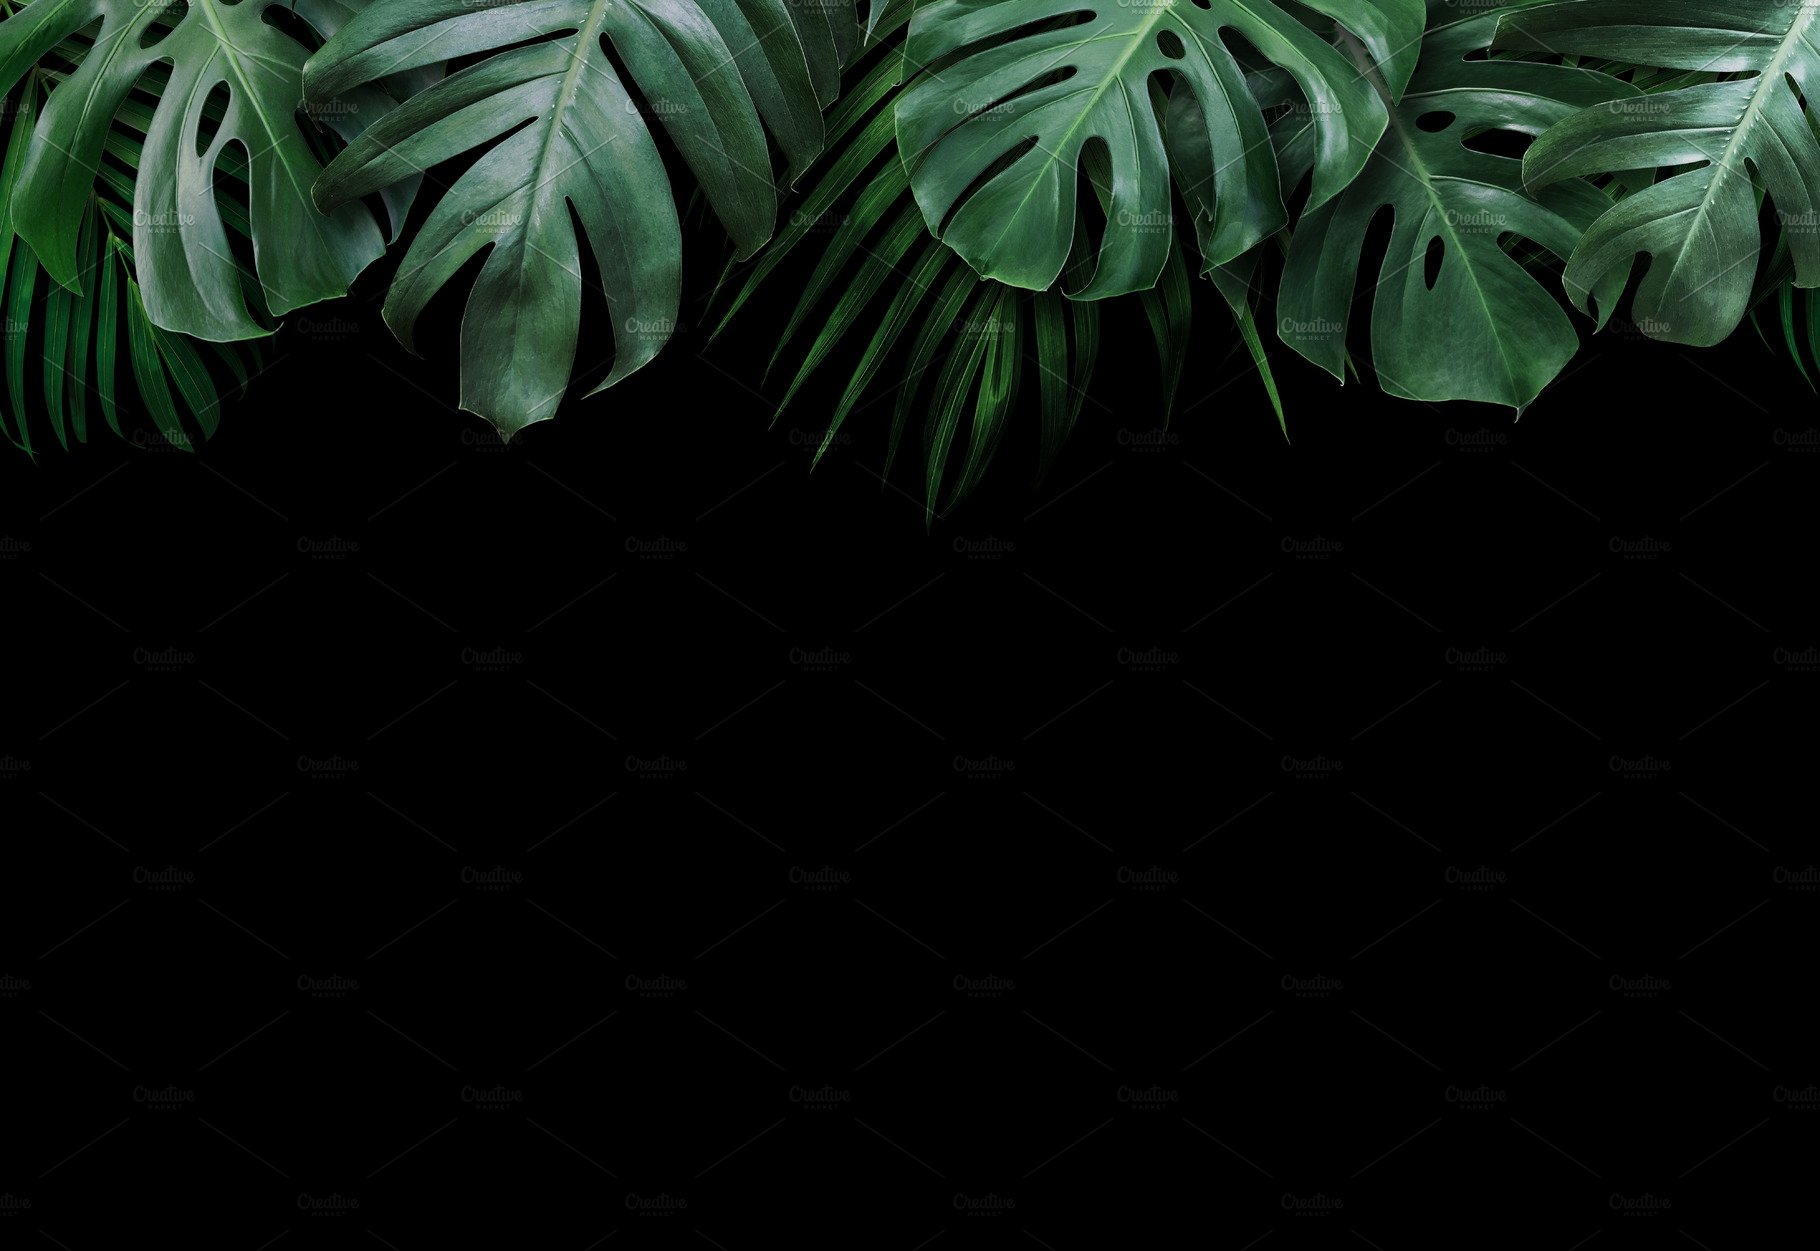 Tropical Leaves On Black Background Containing Backdrop Background And High Quality Nature Stock Photos Creative Market Seamless realistic vector botanical pattern black background. tropical leaves on black background containing backdrop background and